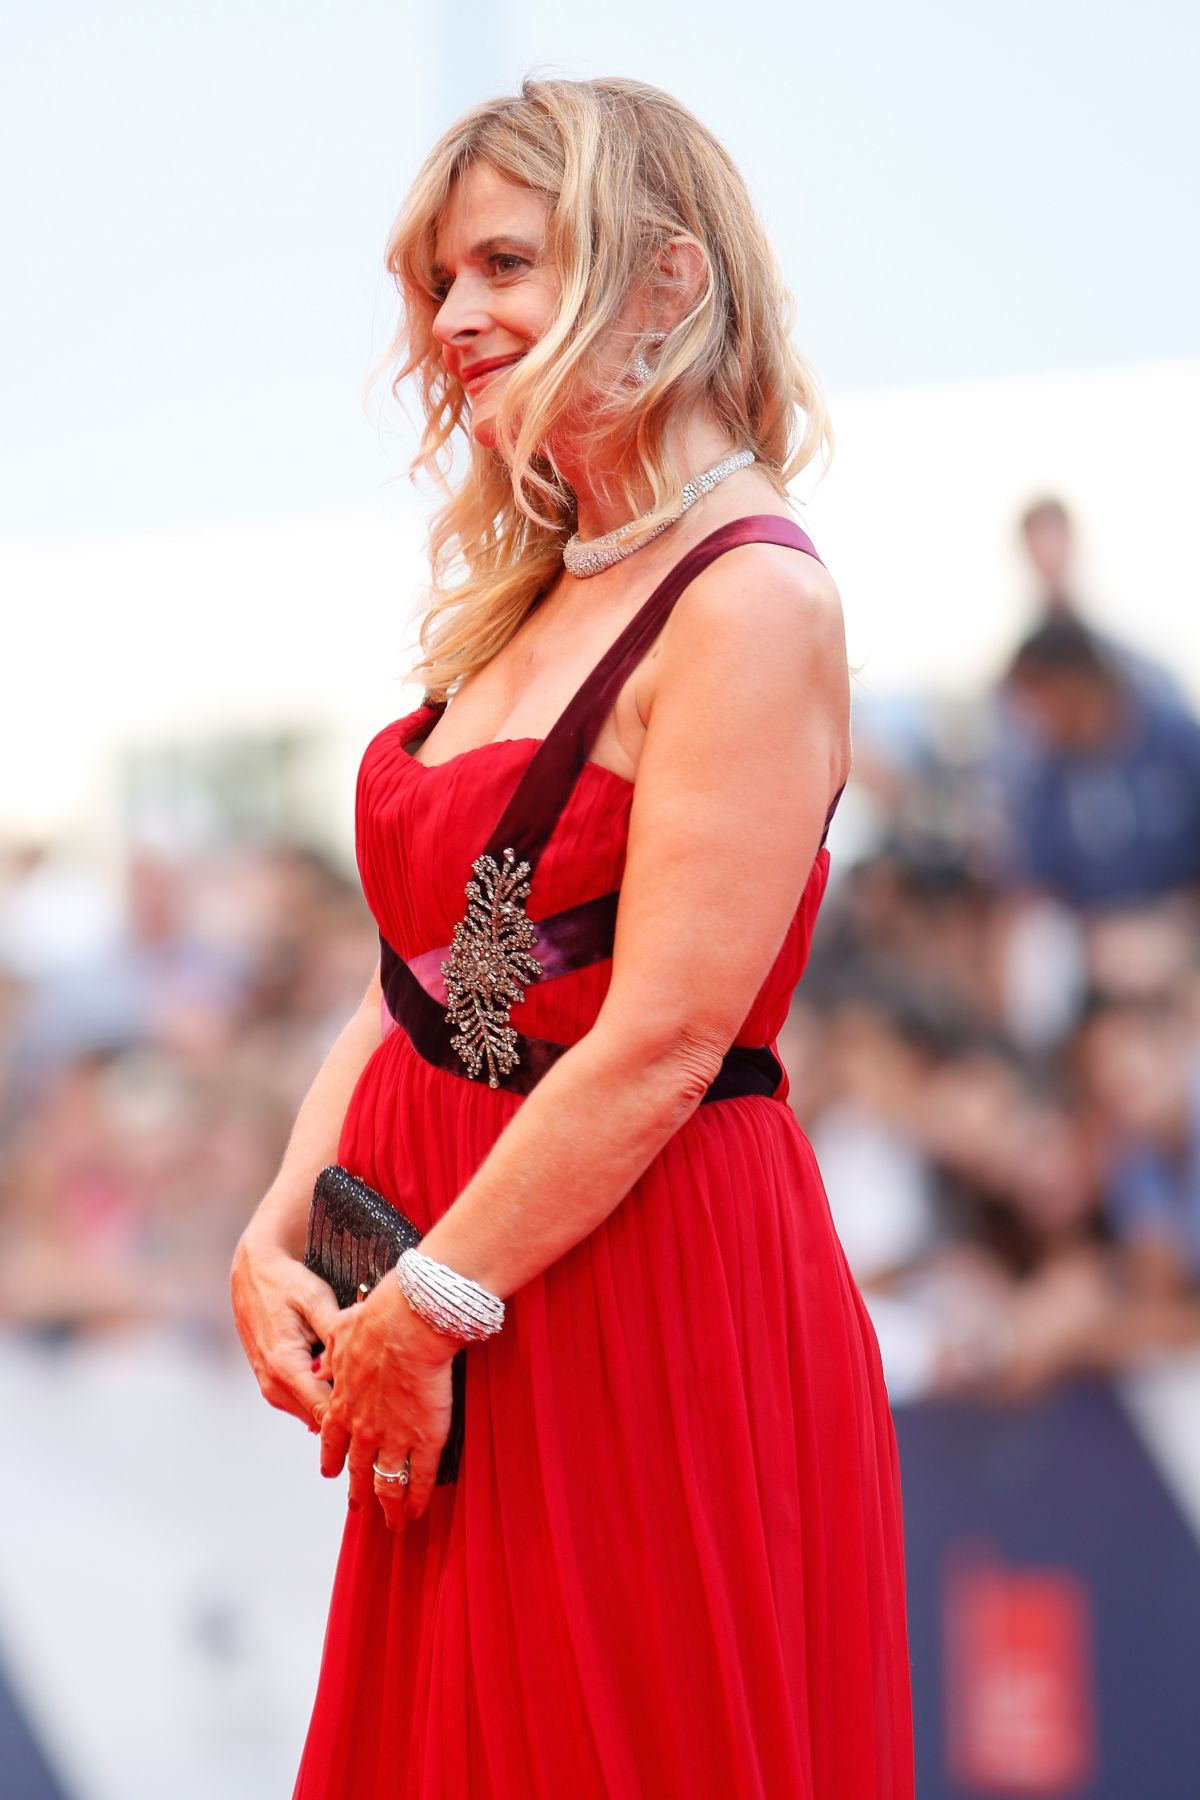 http://www.hawtcelebs.com/wp-content/uploads/2015/09/nastassja-kinski-at-everest-premiere-and-72nd-venice-film-festival-opening-ceremony_1.jpg